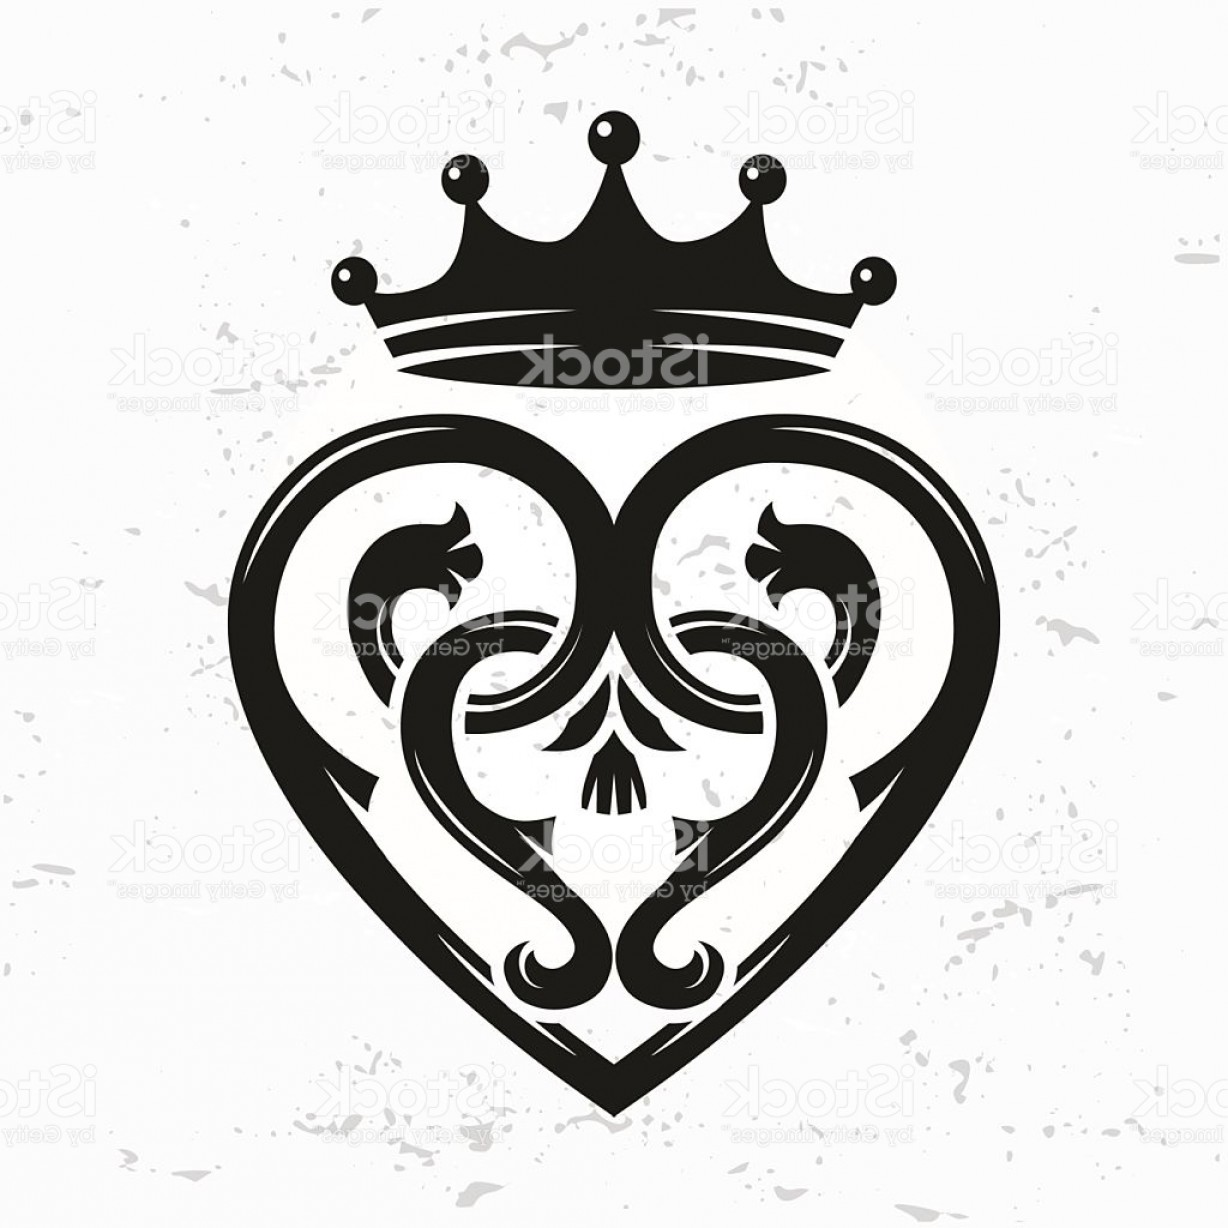 1228x1228 Scottish Luckenbooth Brooch Vector Queen Mary Celtic Heart With